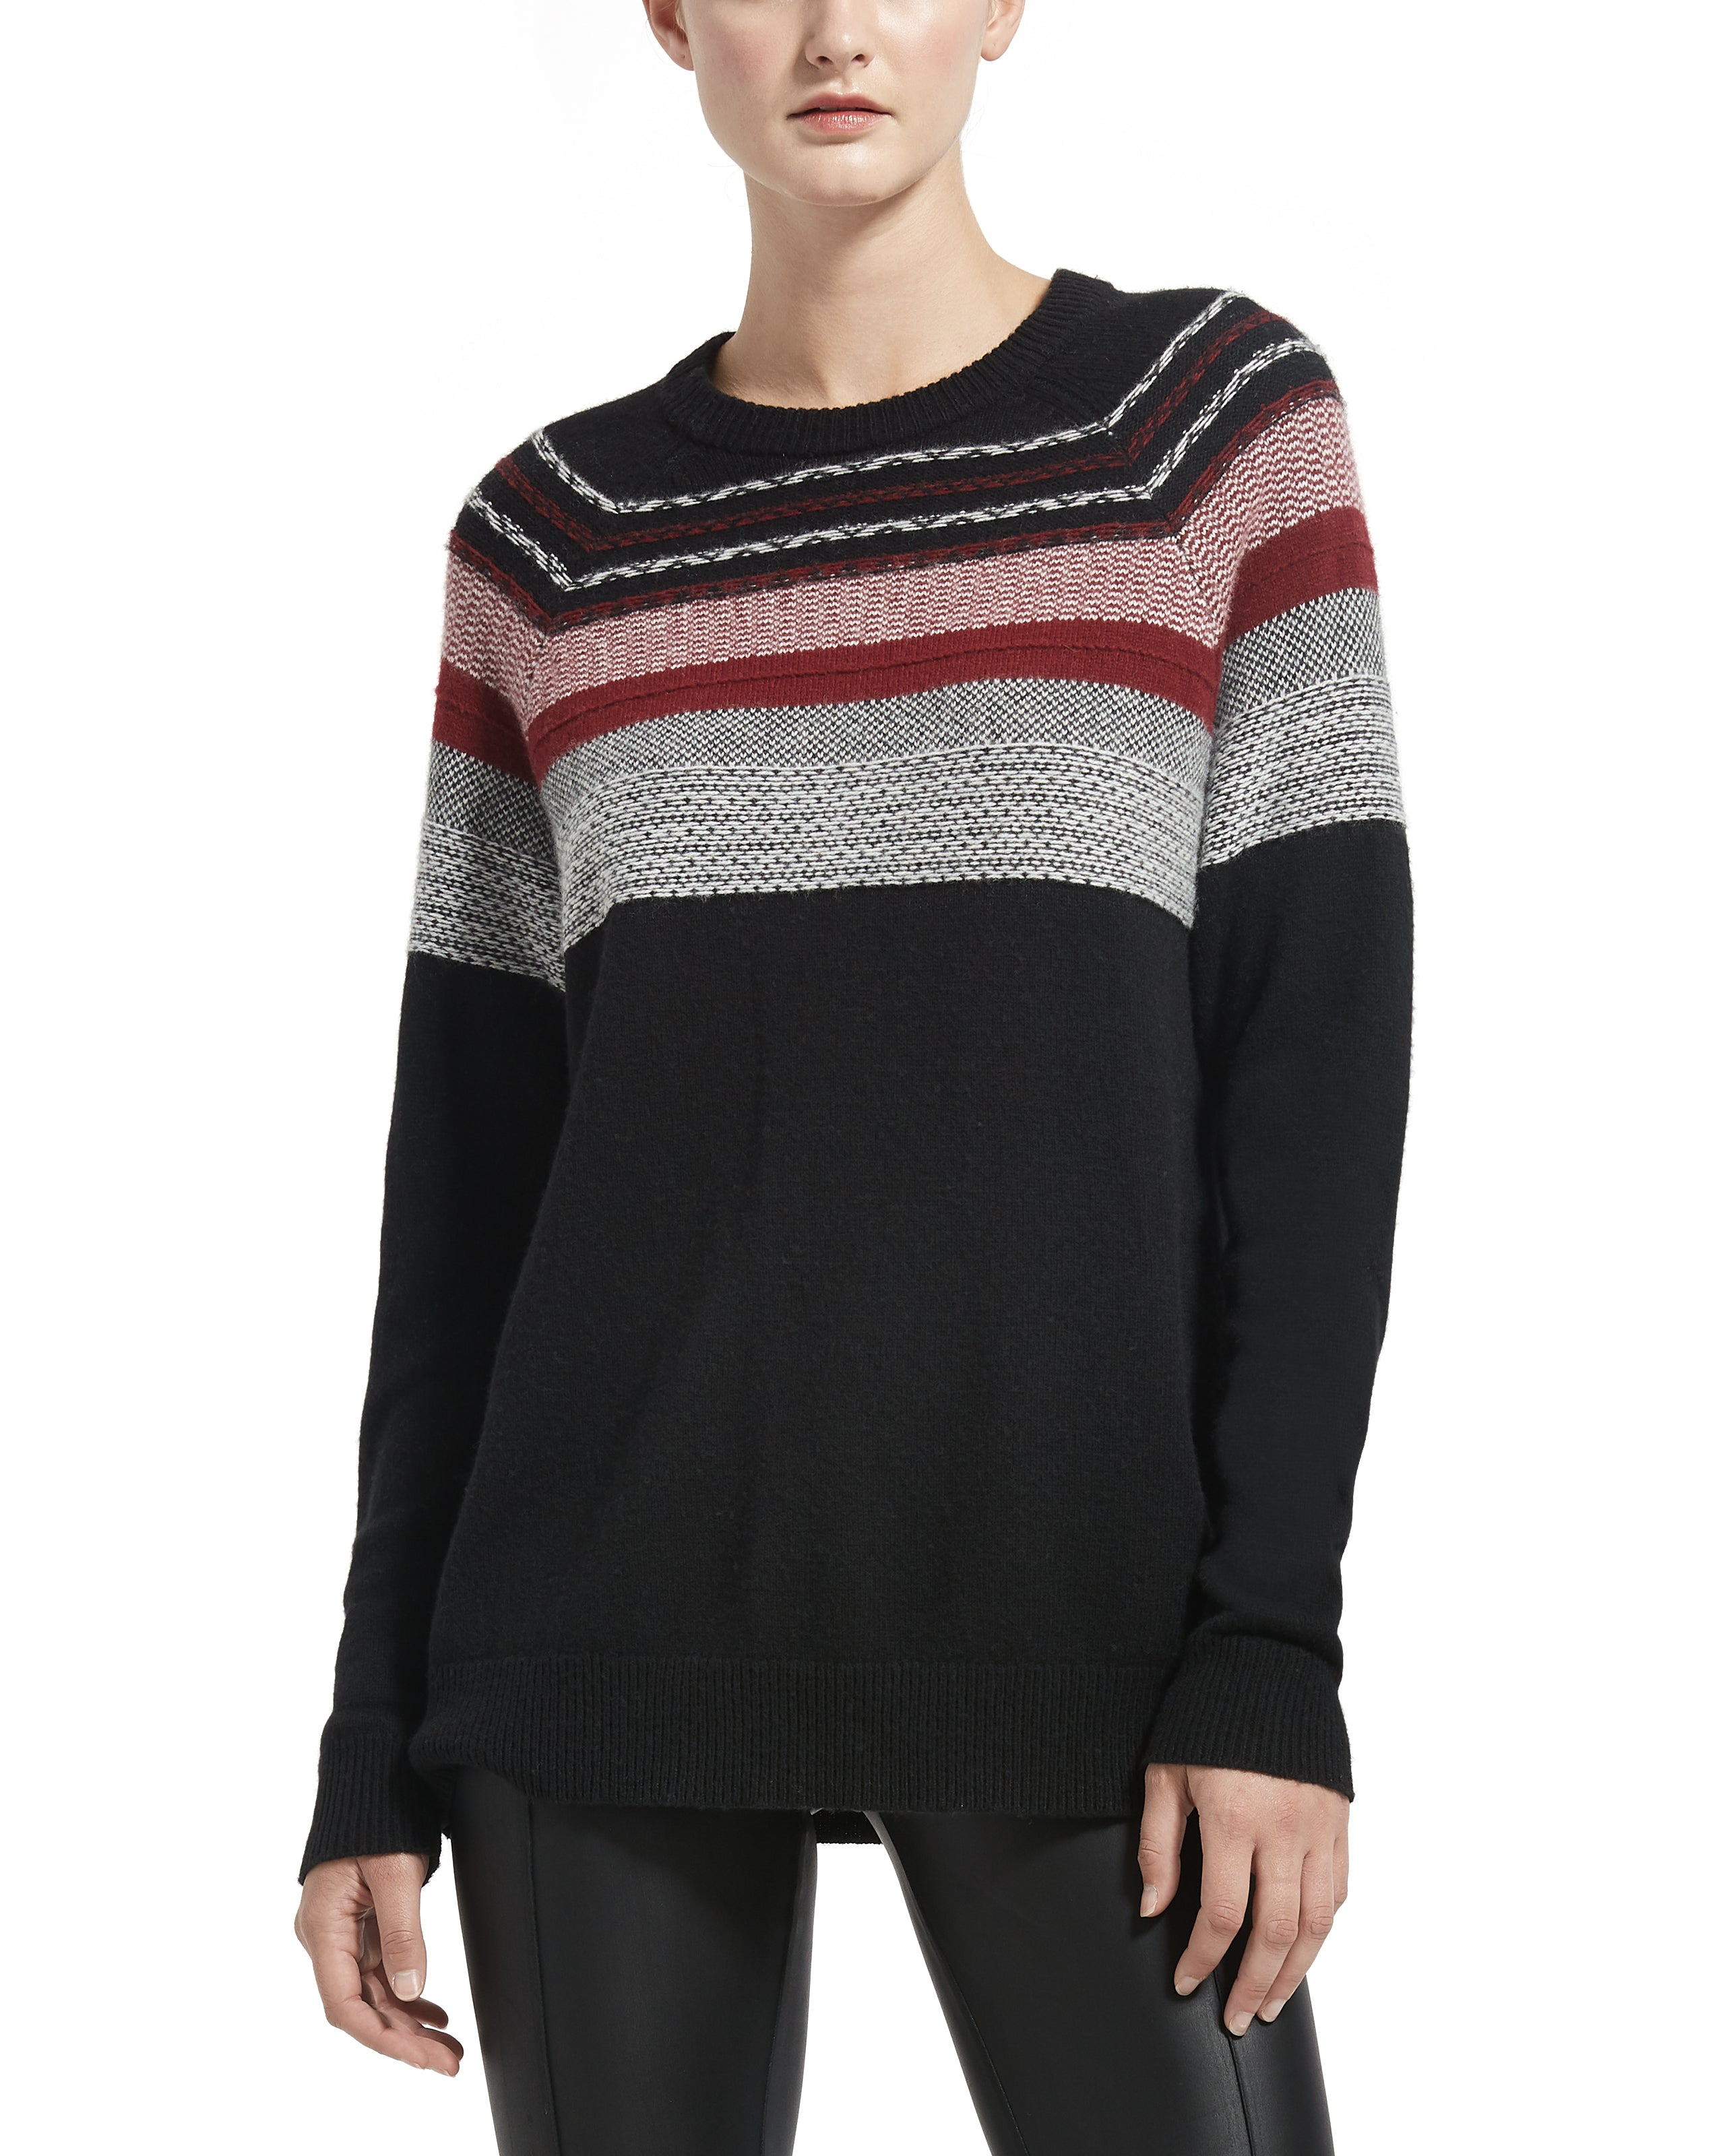 ATM Merino Wool Fair Isle Crew Neck Sweater